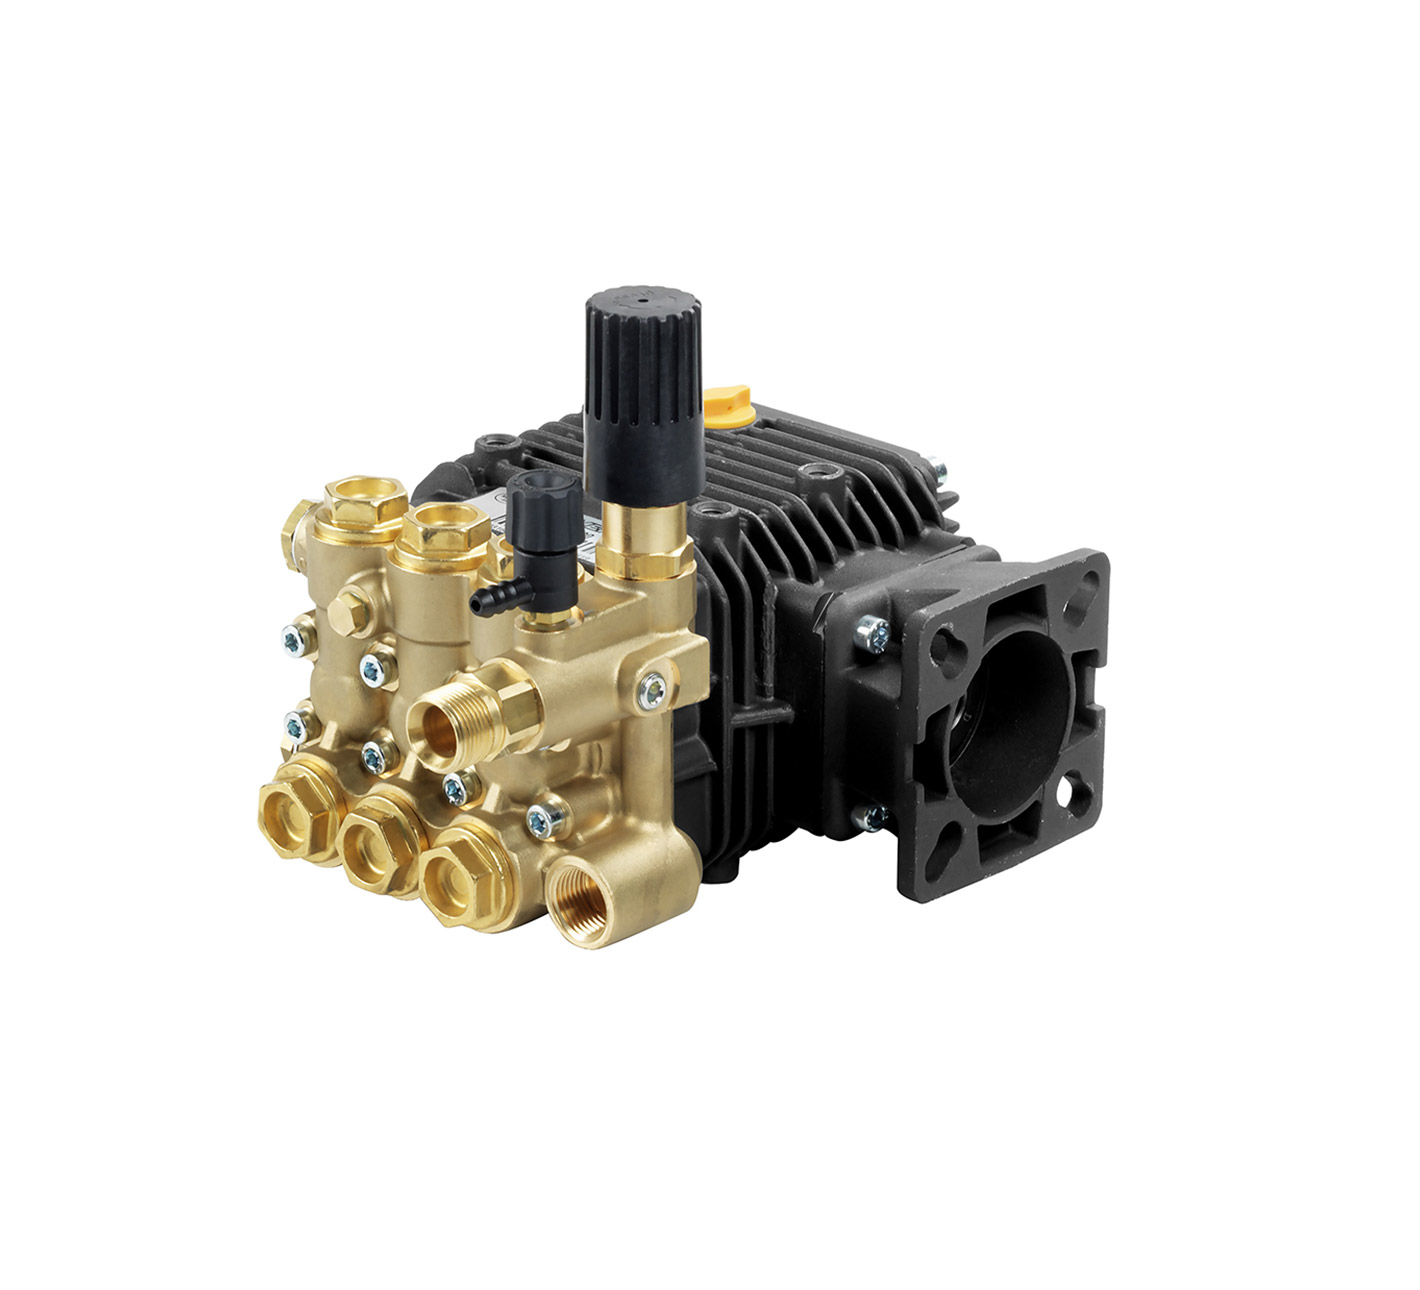 lwd-k 3/4 Comet Industrial Pumps